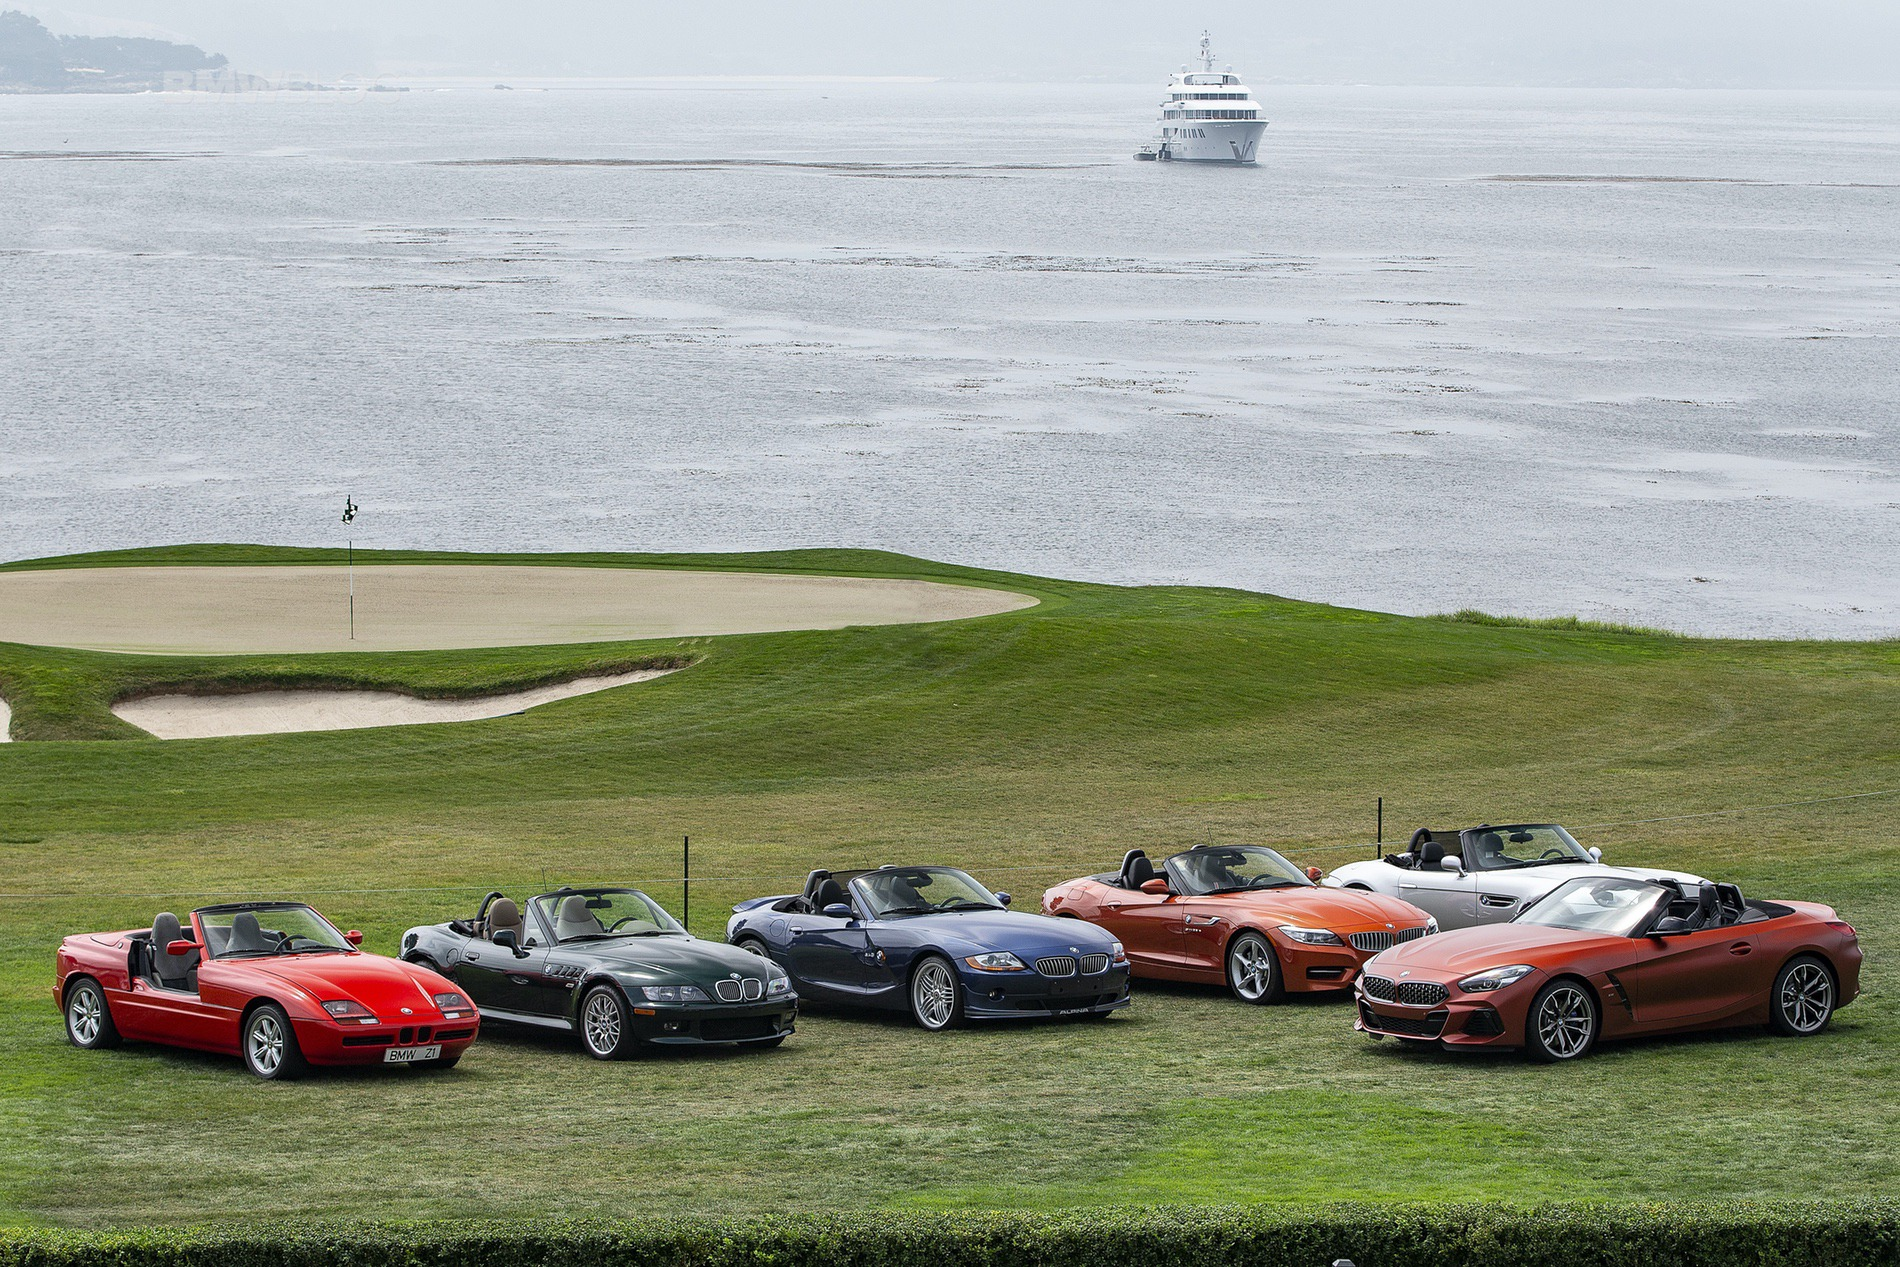 More Photos Of The Bmw G29 Z4 Unveiled At Pebble Beach